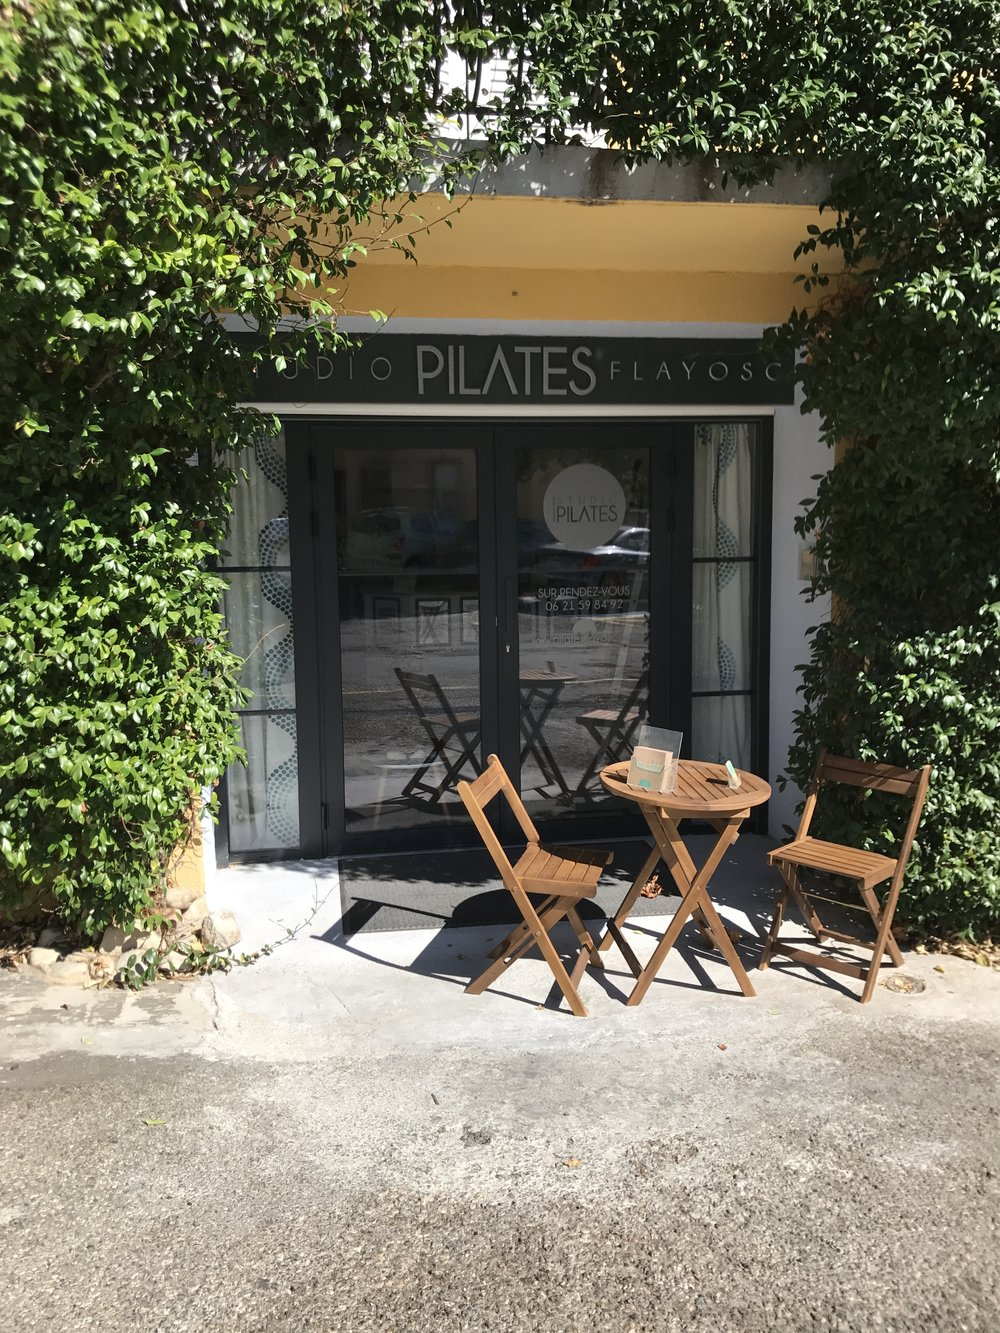 Pilates Studio Flayosc